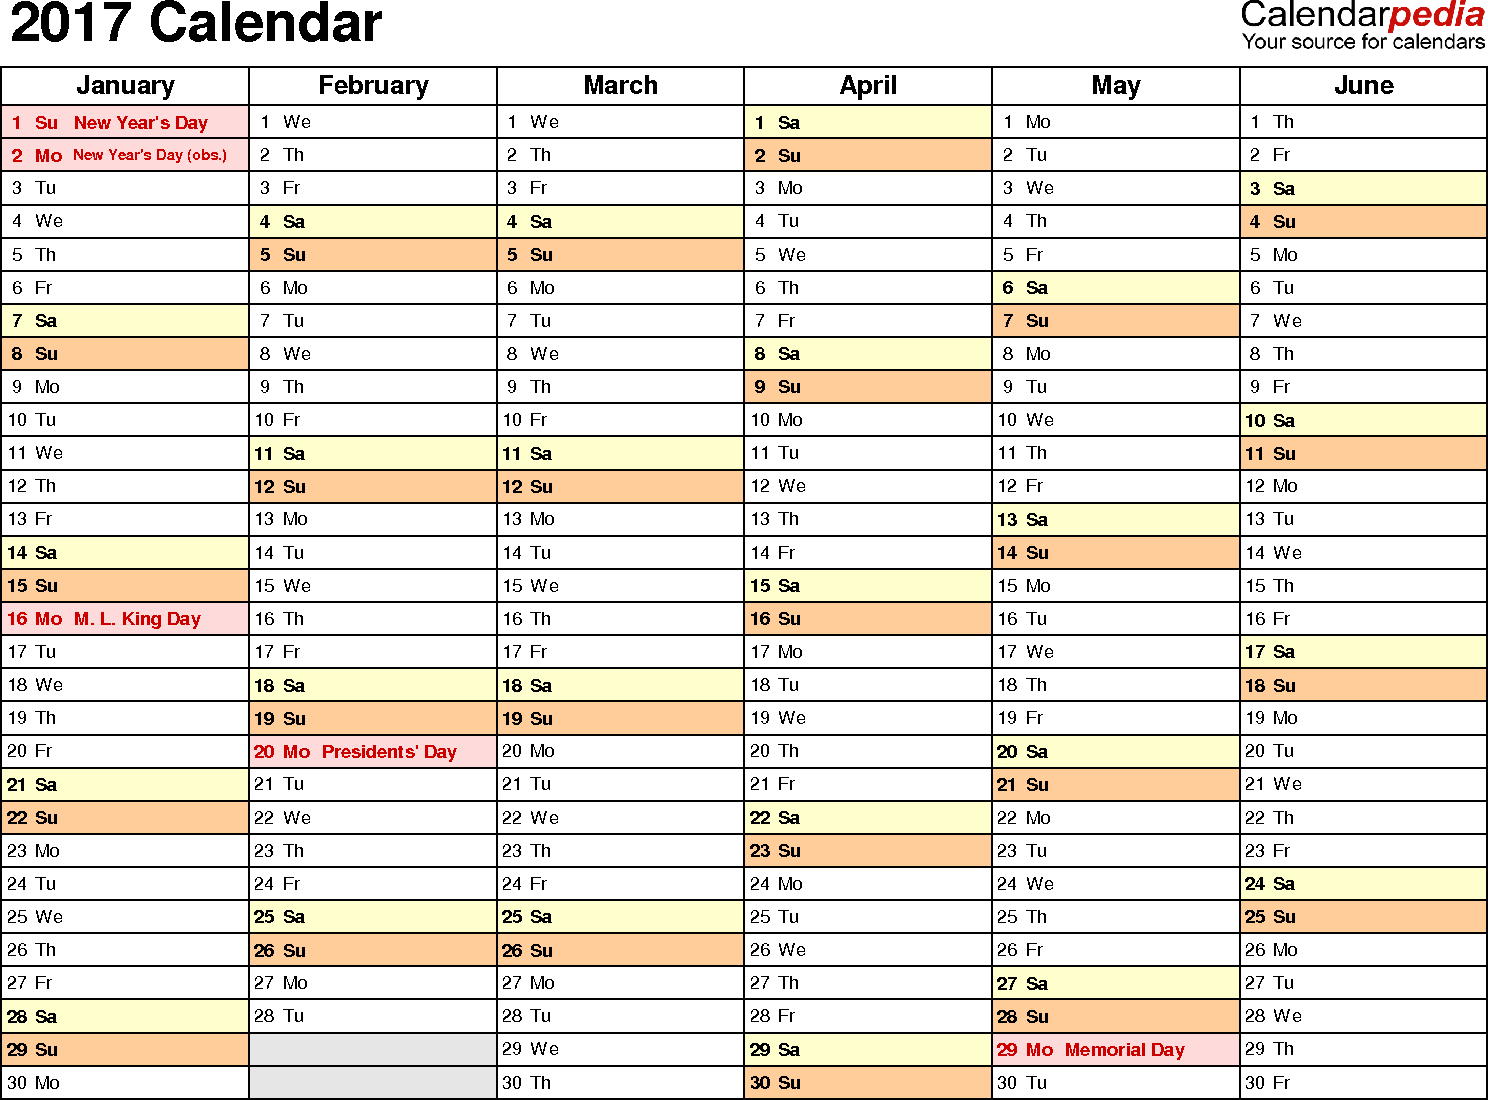 Ediblewildsus  Stunning  Calendar  Download  Free Printable Excel Templates Xls With Great Template   Calendar For Excel Months Horizontally  Pages Landscape Orientation With Beautiful Excel Shortcut For Strikethrough Also Rank Excel In Addition Insert Column Excel And Password Protect Excel  As Well As Excel Right Function Additionally Line Spacing In Excel From Calendarpediacom With Ediblewildsus  Great  Calendar  Download  Free Printable Excel Templates Xls With Beautiful Template   Calendar For Excel Months Horizontally  Pages Landscape Orientation And Stunning Excel Shortcut For Strikethrough Also Rank Excel In Addition Insert Column Excel From Calendarpediacom